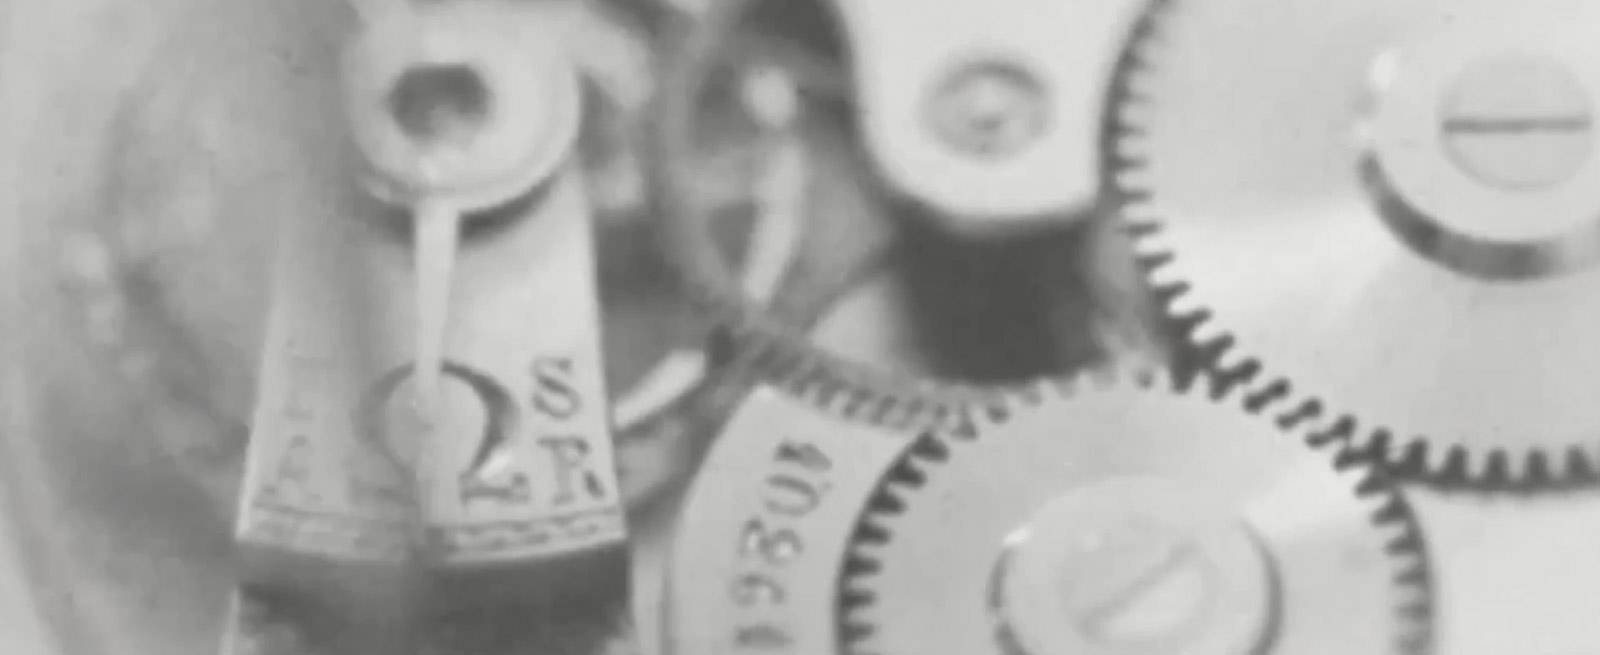 Watchmaking has always been at the heart of our brand